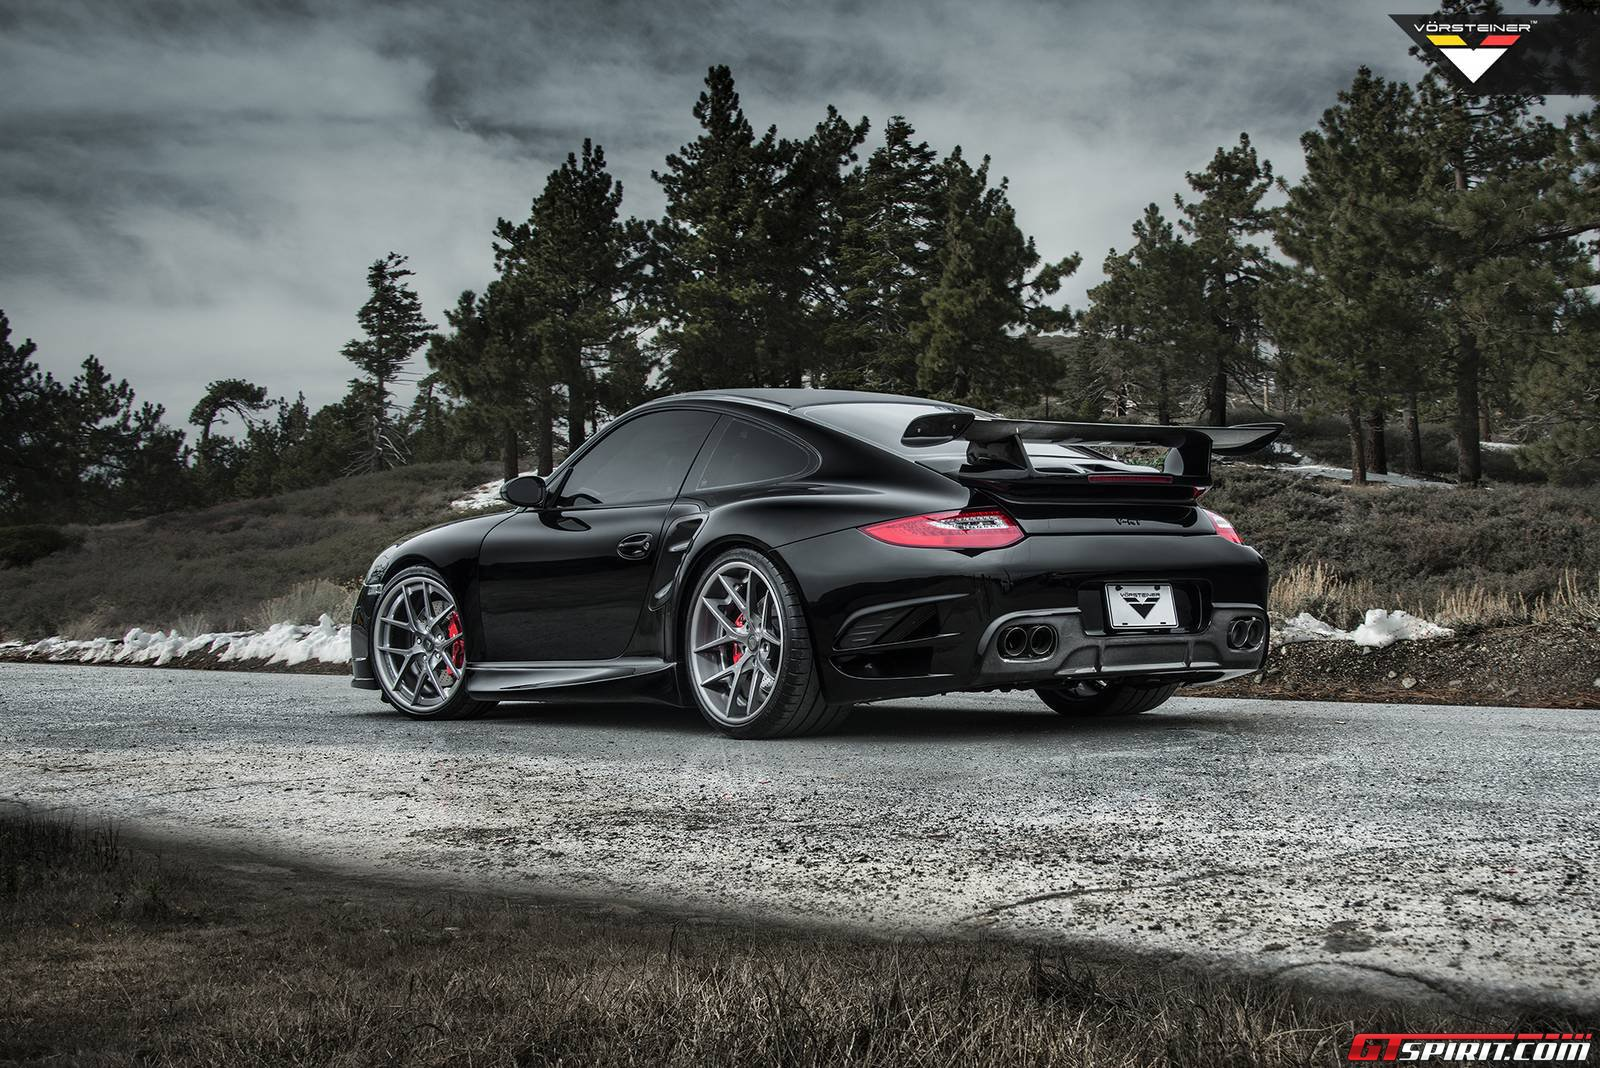 official vorsteiner porsche 997 v rt edition 911 turbo gtspirit. Black Bedroom Furniture Sets. Home Design Ideas